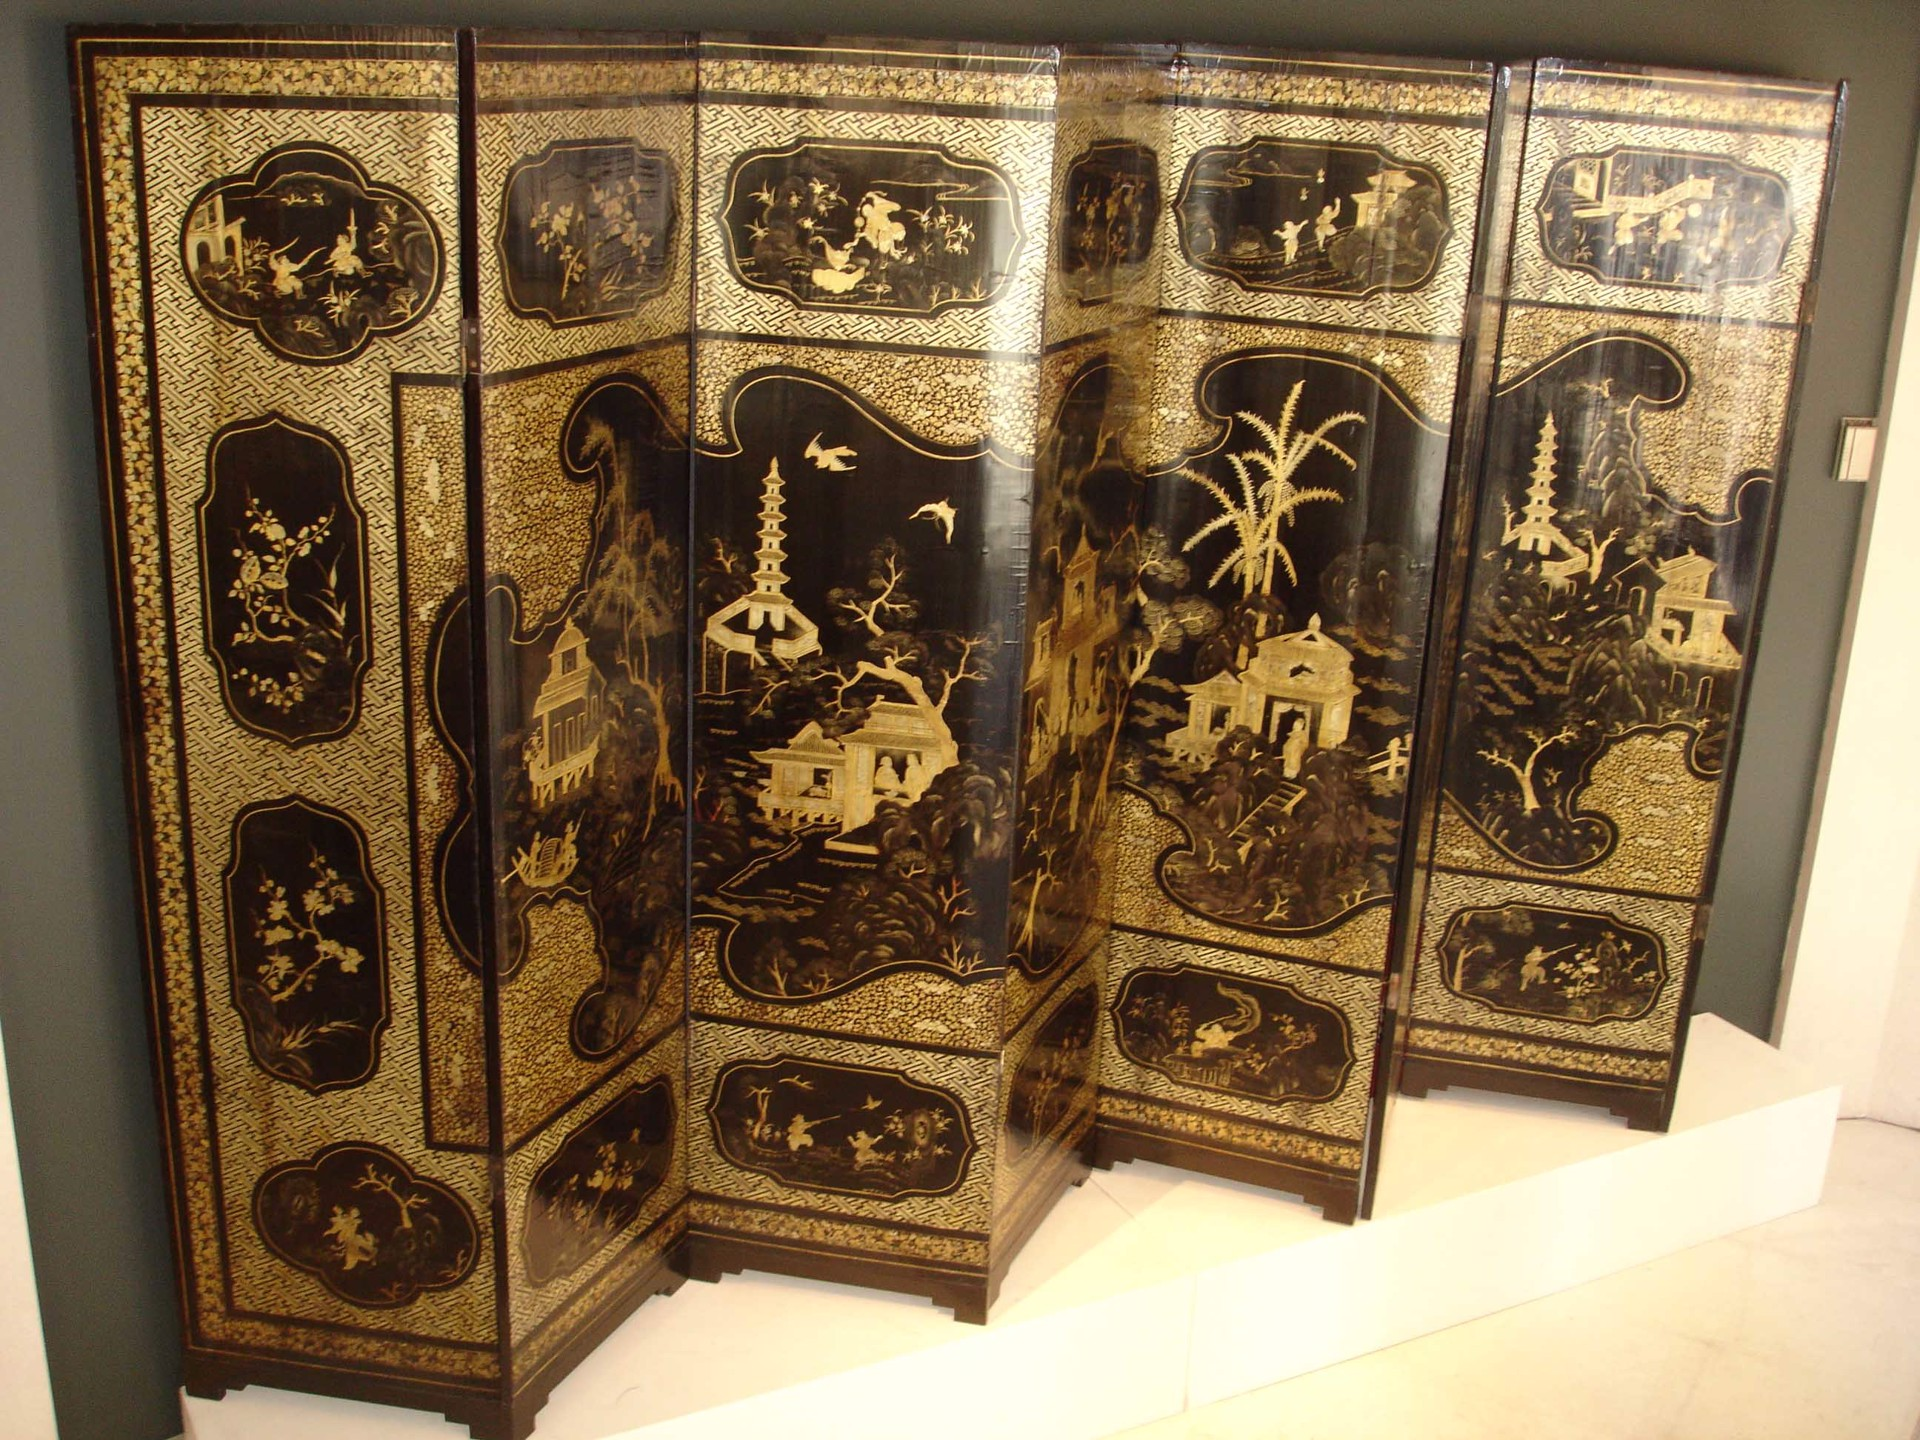 EIGHT PANEL BLACK LACQUER AND GILT SCREEN